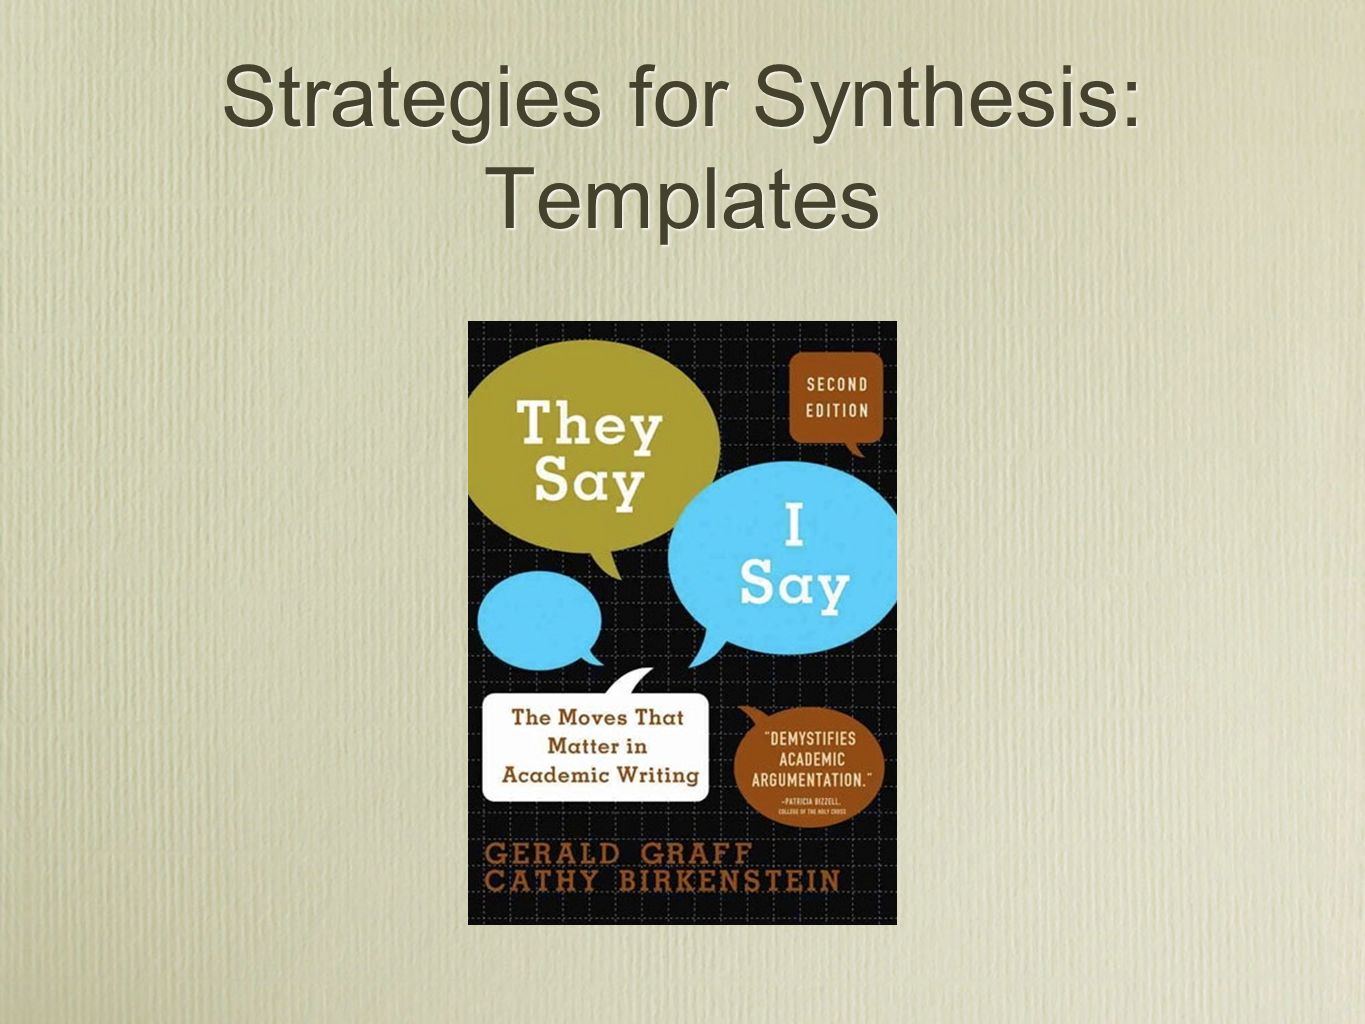 Strategies for Synthesis: Templates